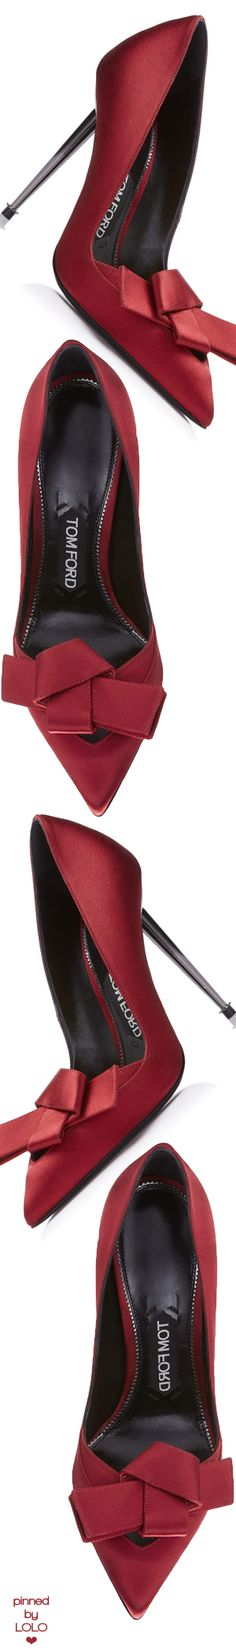 Tom Ford Origami Satin Pump